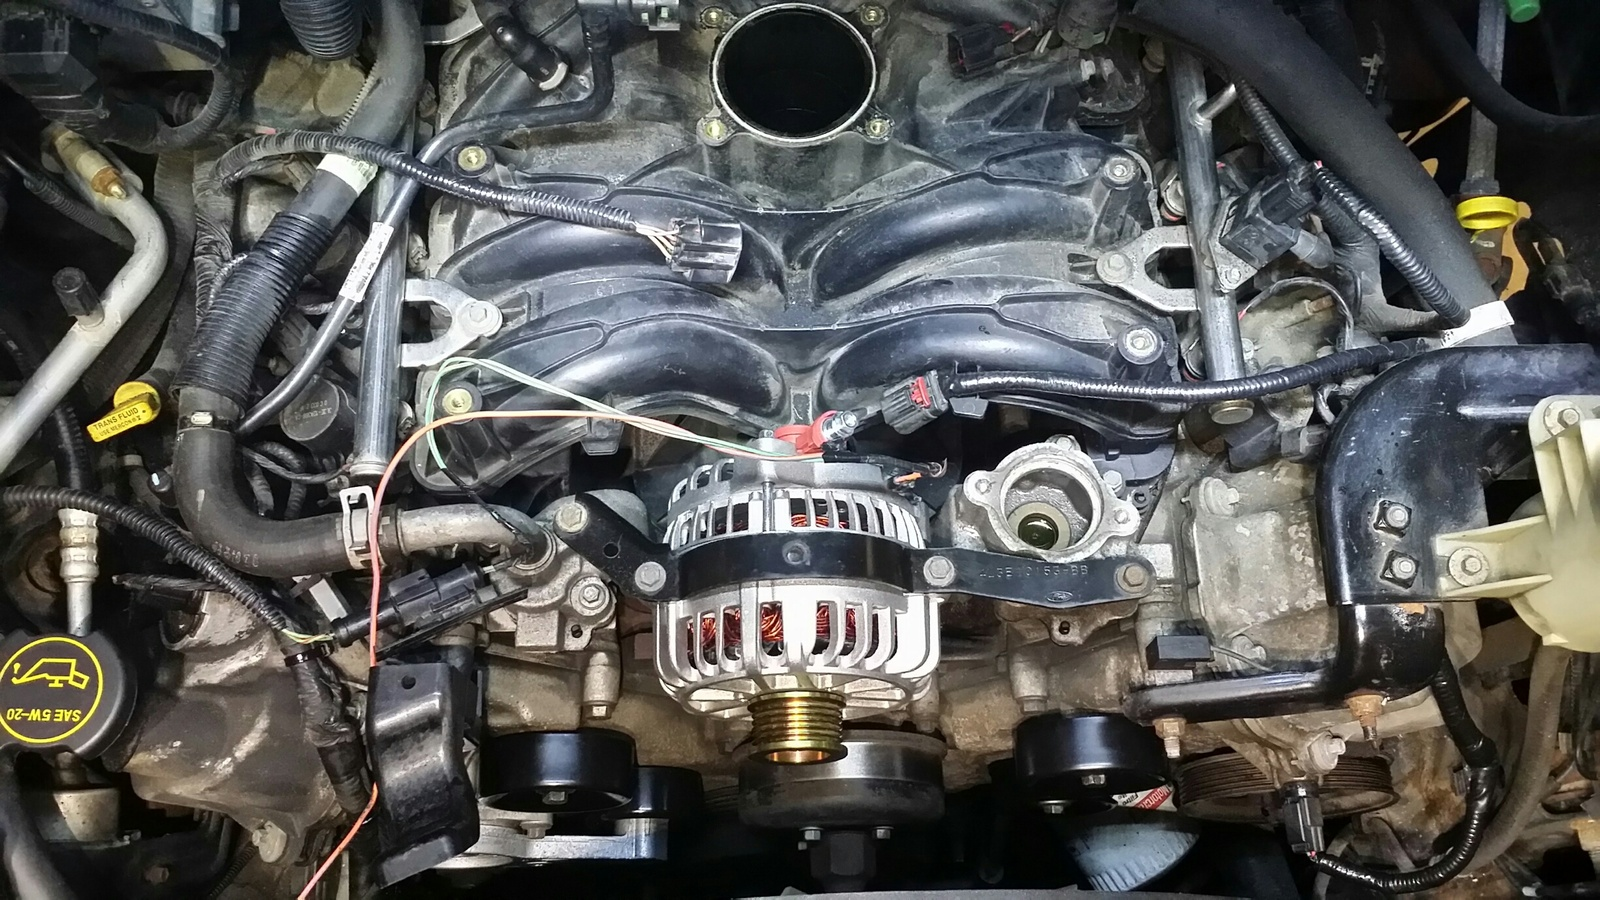 Ford F 150 Questions Alternator Battery Or Electrical Cargurus 2004 Stx Fuse Box Bad Idea Either Since It Will Only Take 5 10 Mins While Everything Else Is Out Of The Way See Attached Pic I Did This Job Just A Couple Weeks Ago